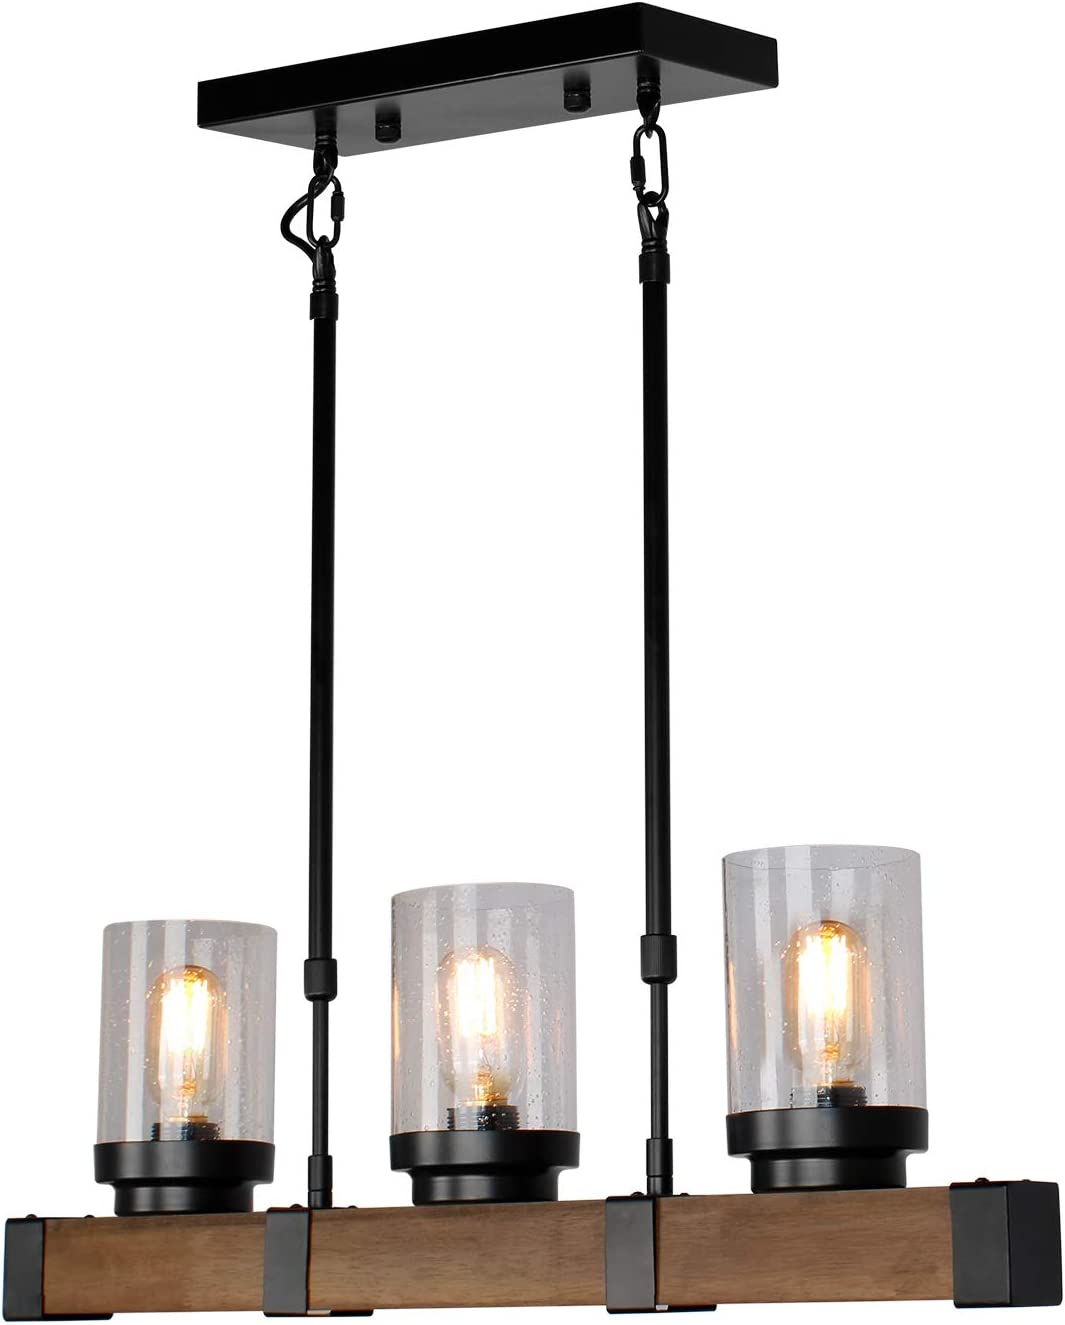 JHLBYL Farmhouse Chandeliers Colorado Springs Mall 3-Light Wooden and Cei Metal Rustic Max 68% OFF